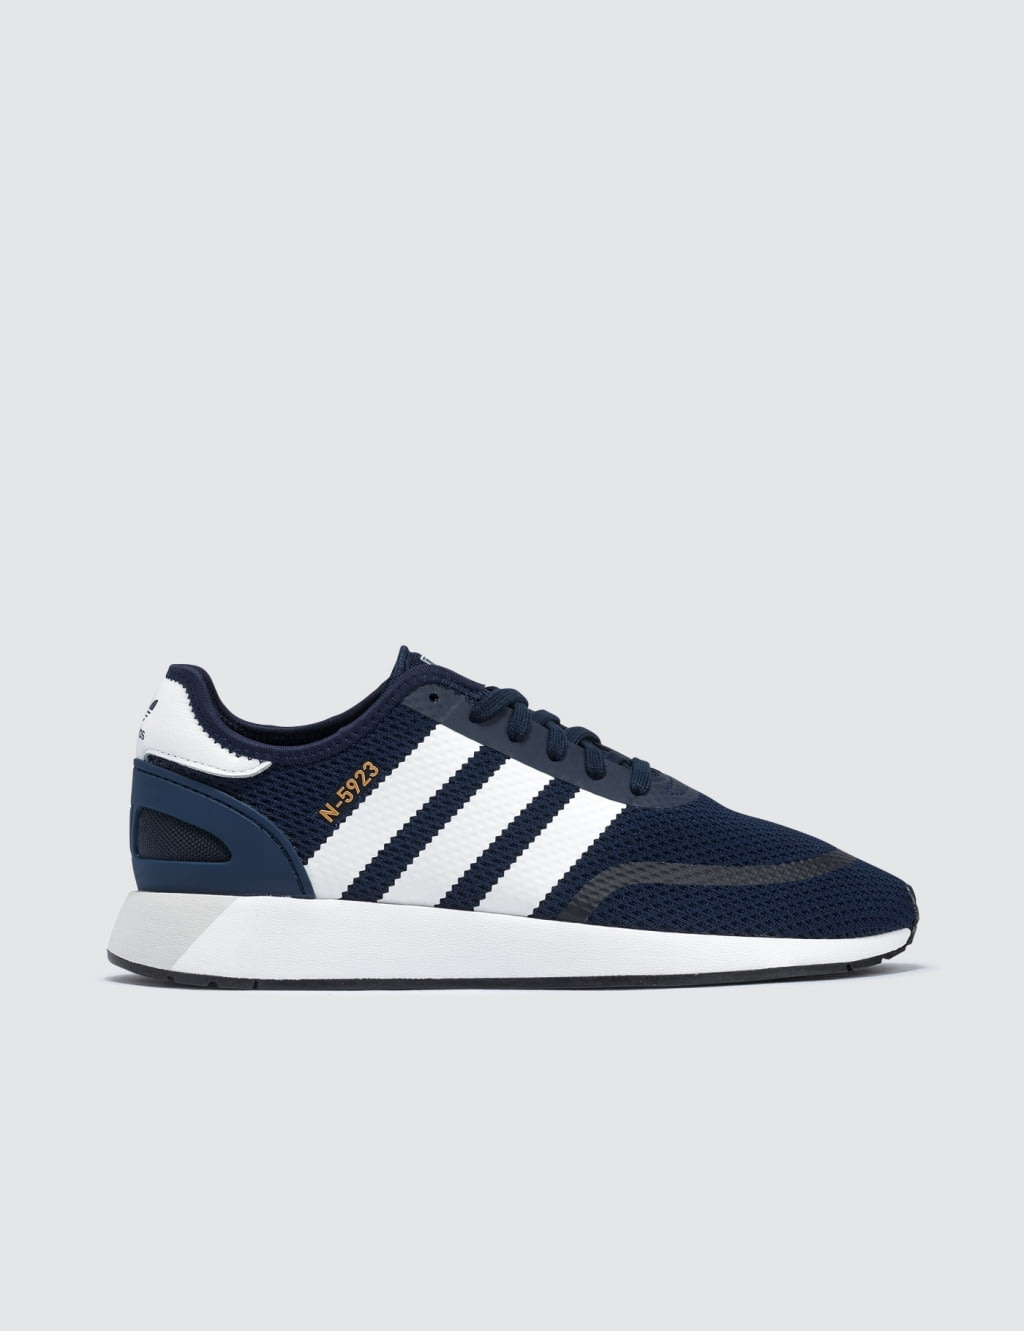 ea874aaa5 shopping adidas originals iniki runner cls adidas originals iniki runner  cls 38332 55644